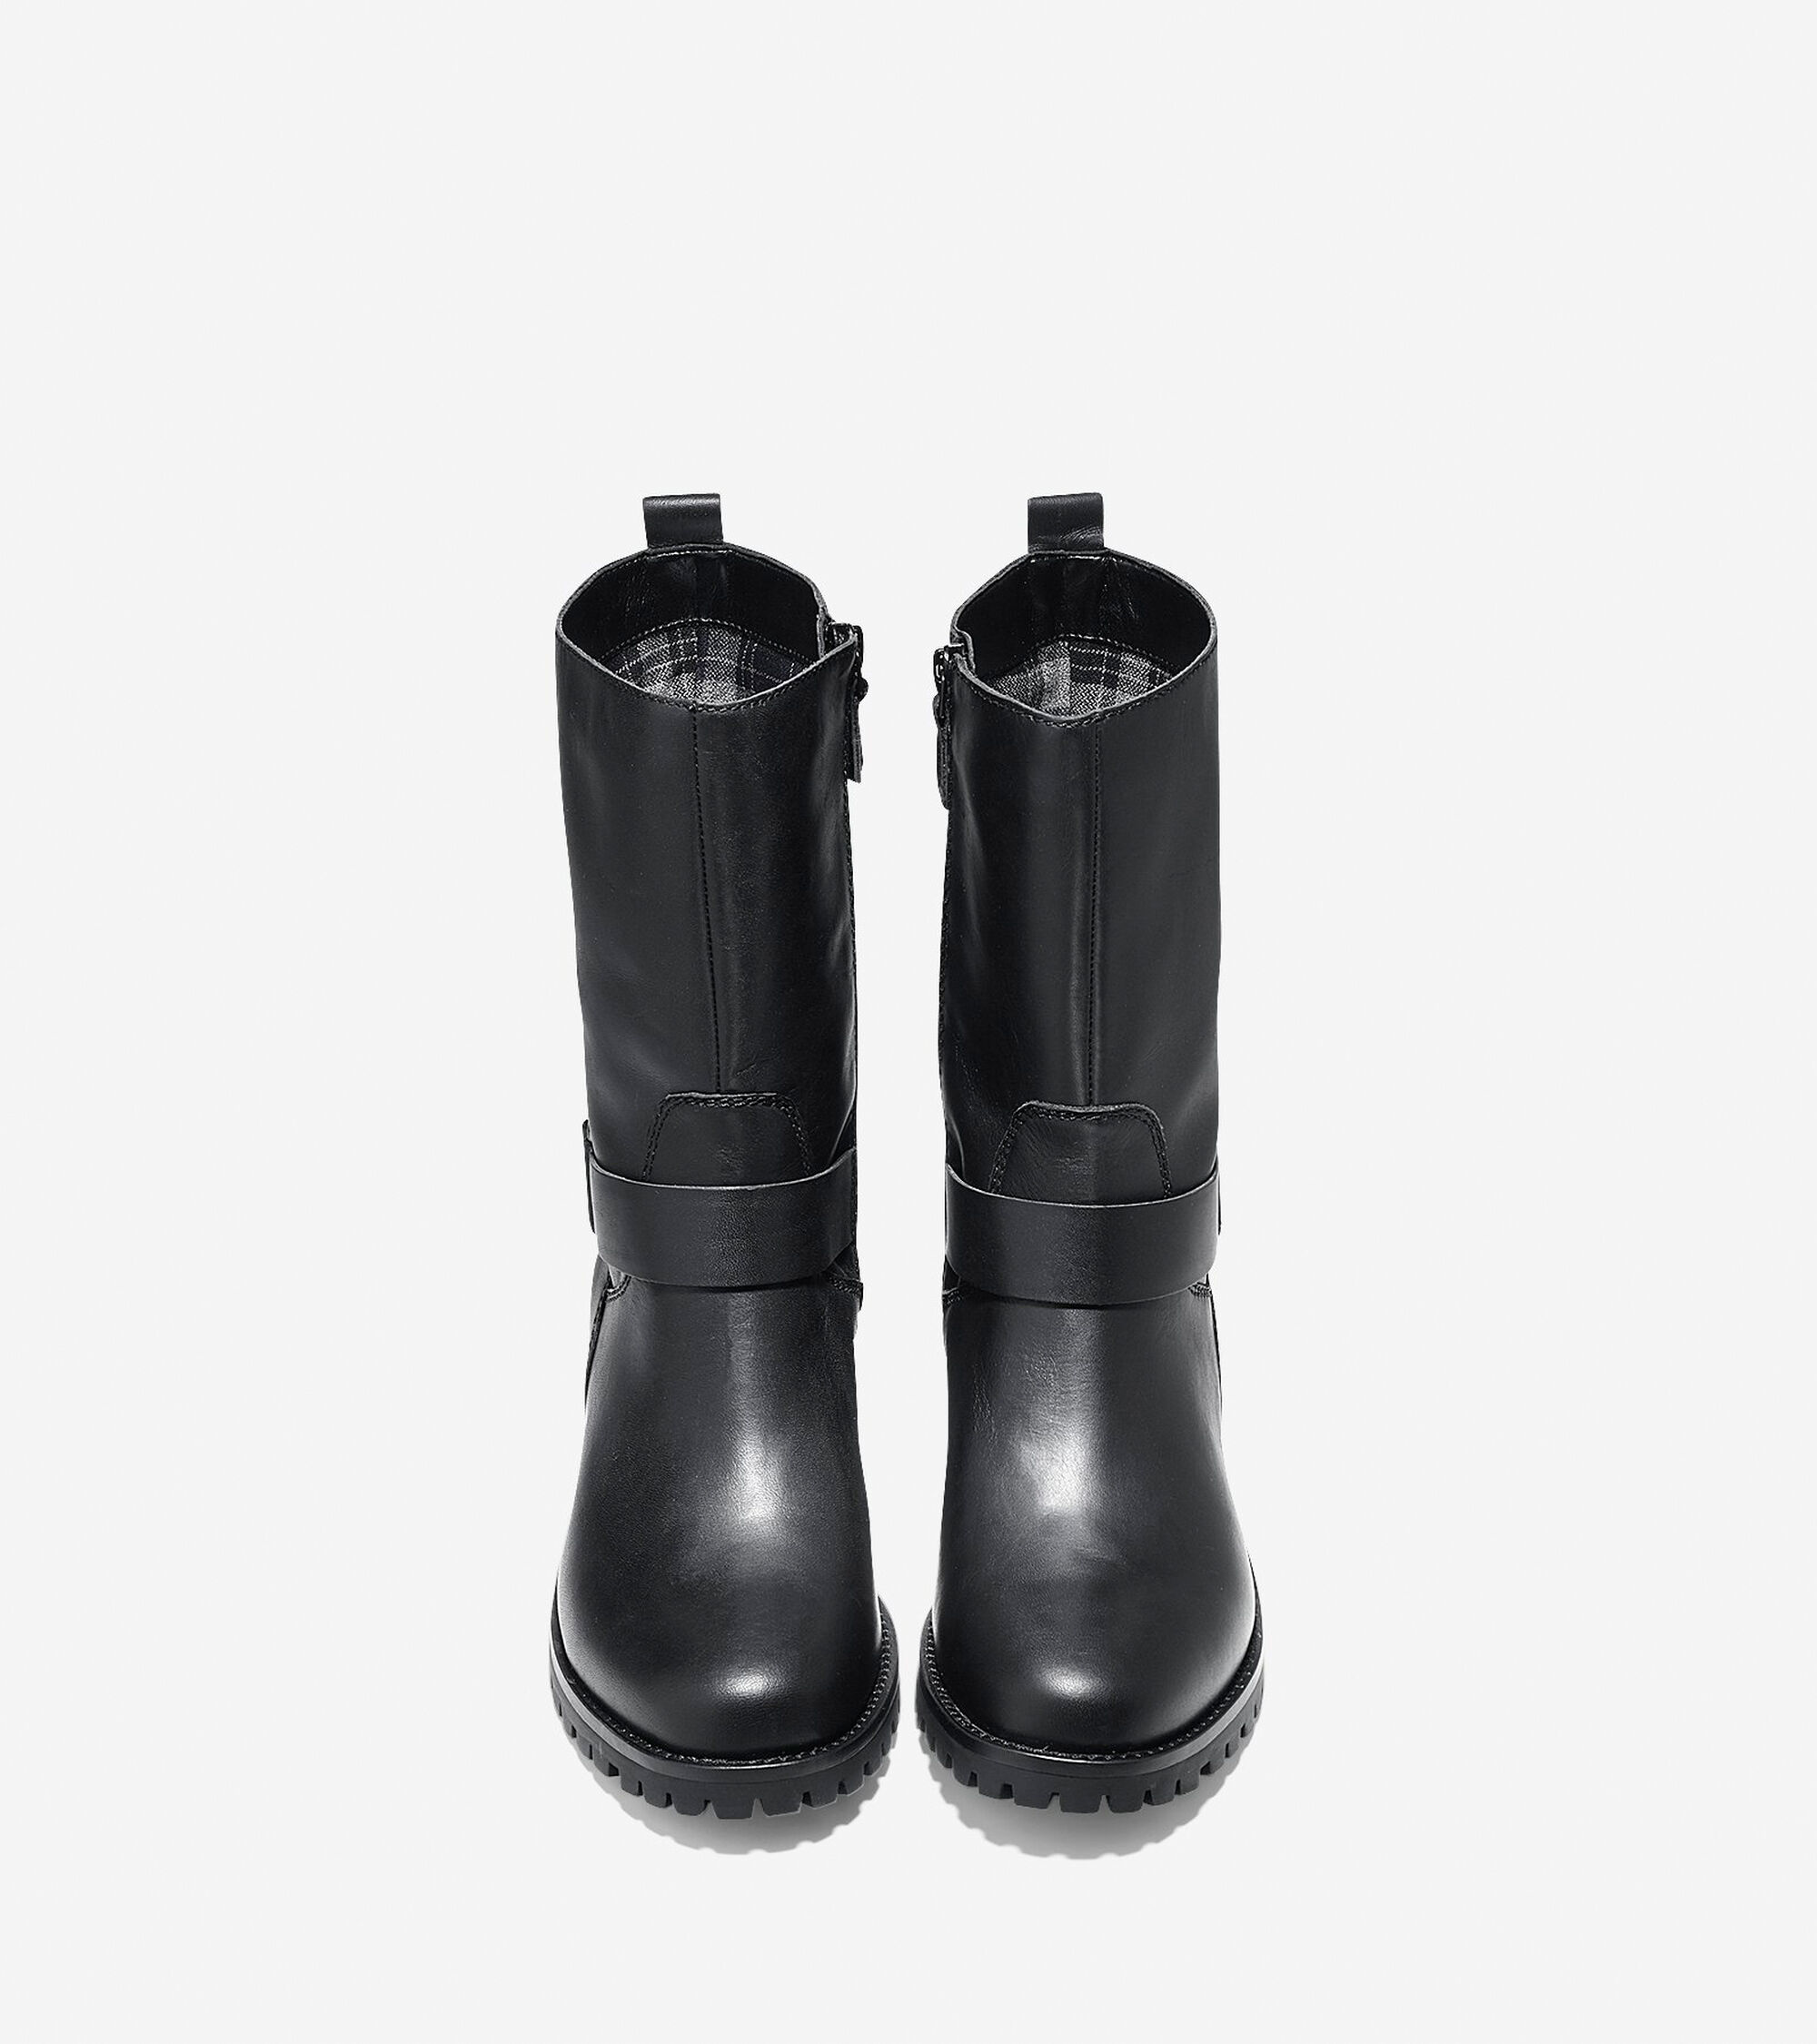 dress boot rover s casual on shop a for boots comforter and black walking men comfortable cloud